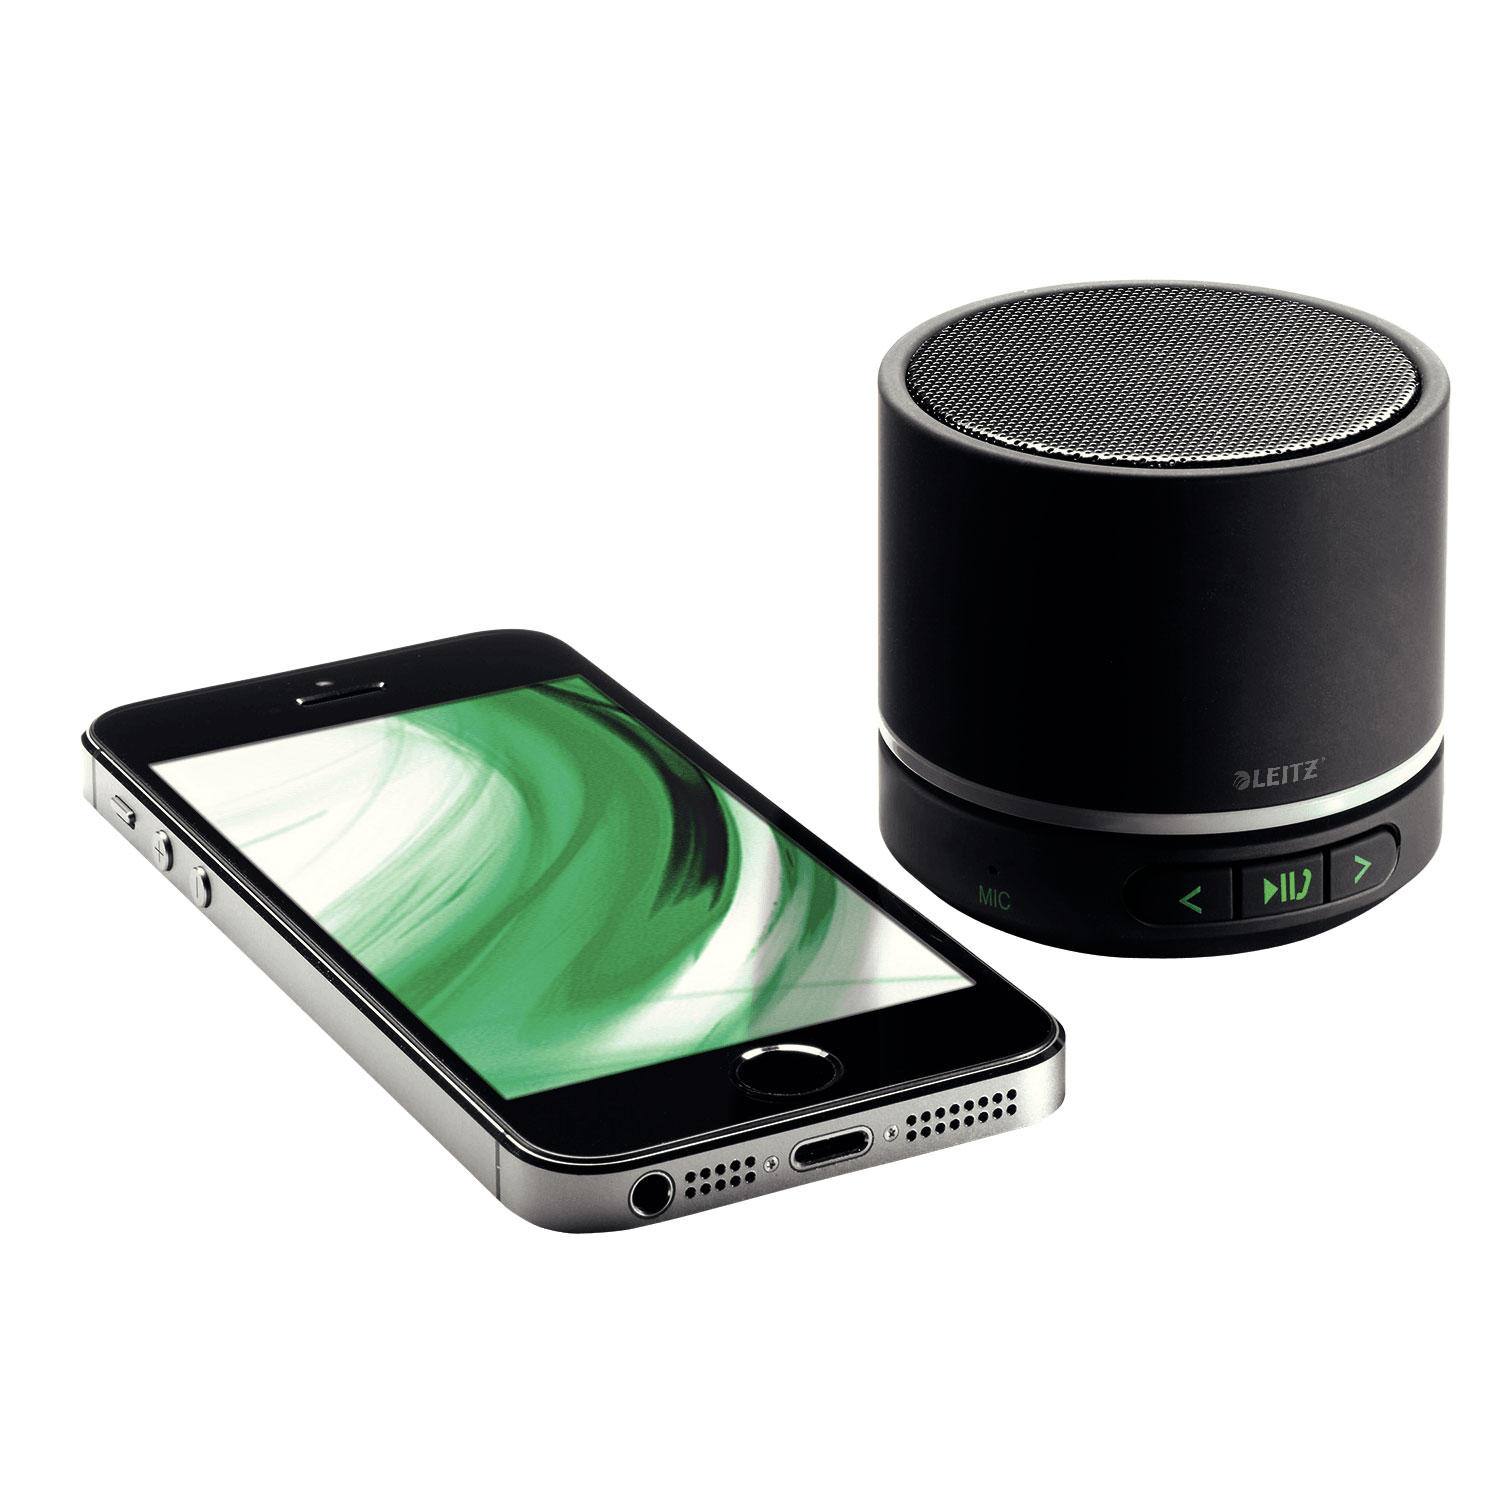 leitz complete mini enceinte portable bluetooth hd dock. Black Bedroom Furniture Sets. Home Design Ideas